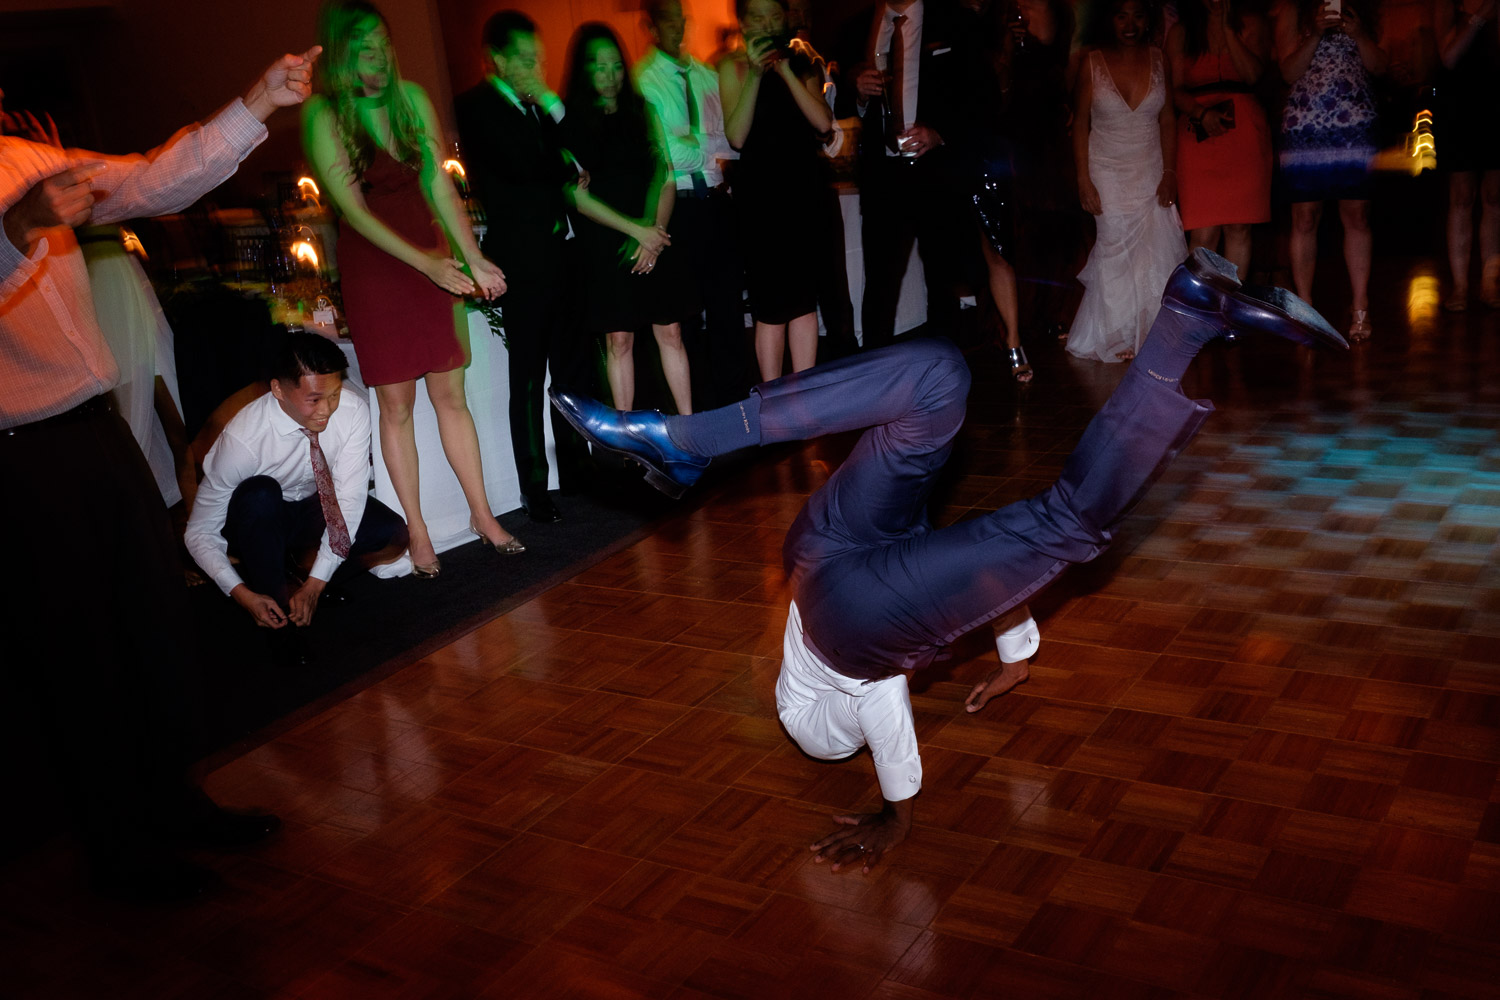 The groom does some breakdancing on the dance floor during his wedding reception at the Art Gallery of Ontario in Toronto.